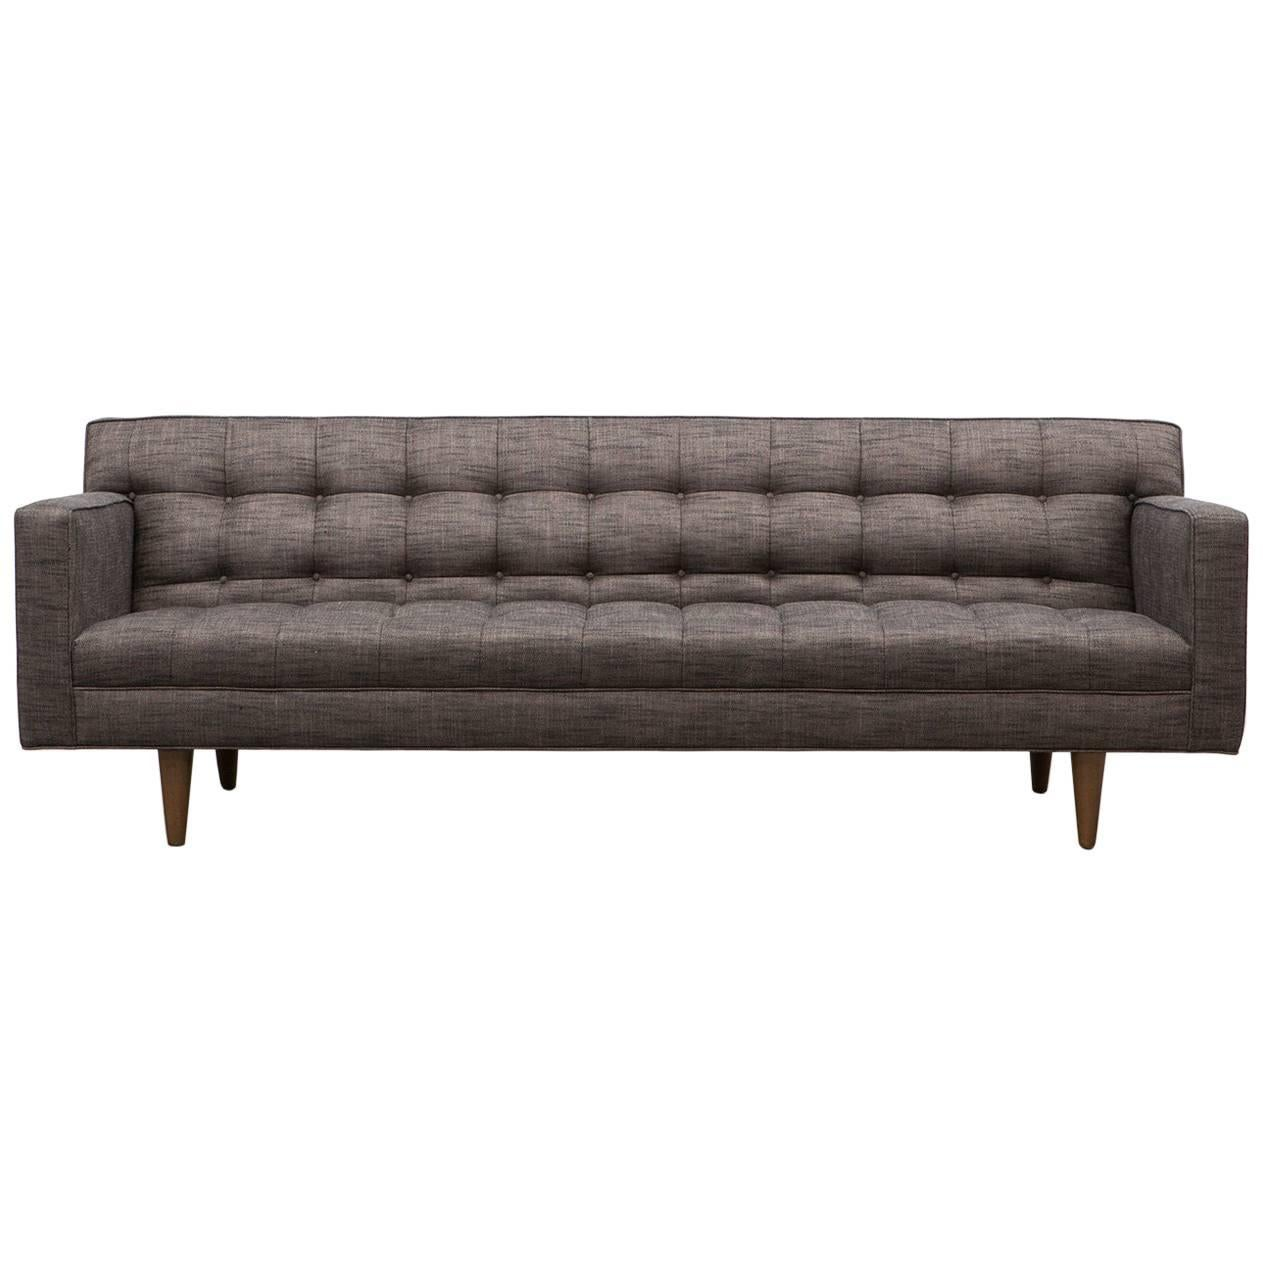 Edward Wormley Sofa U0027bu0027 New Upholstery ...